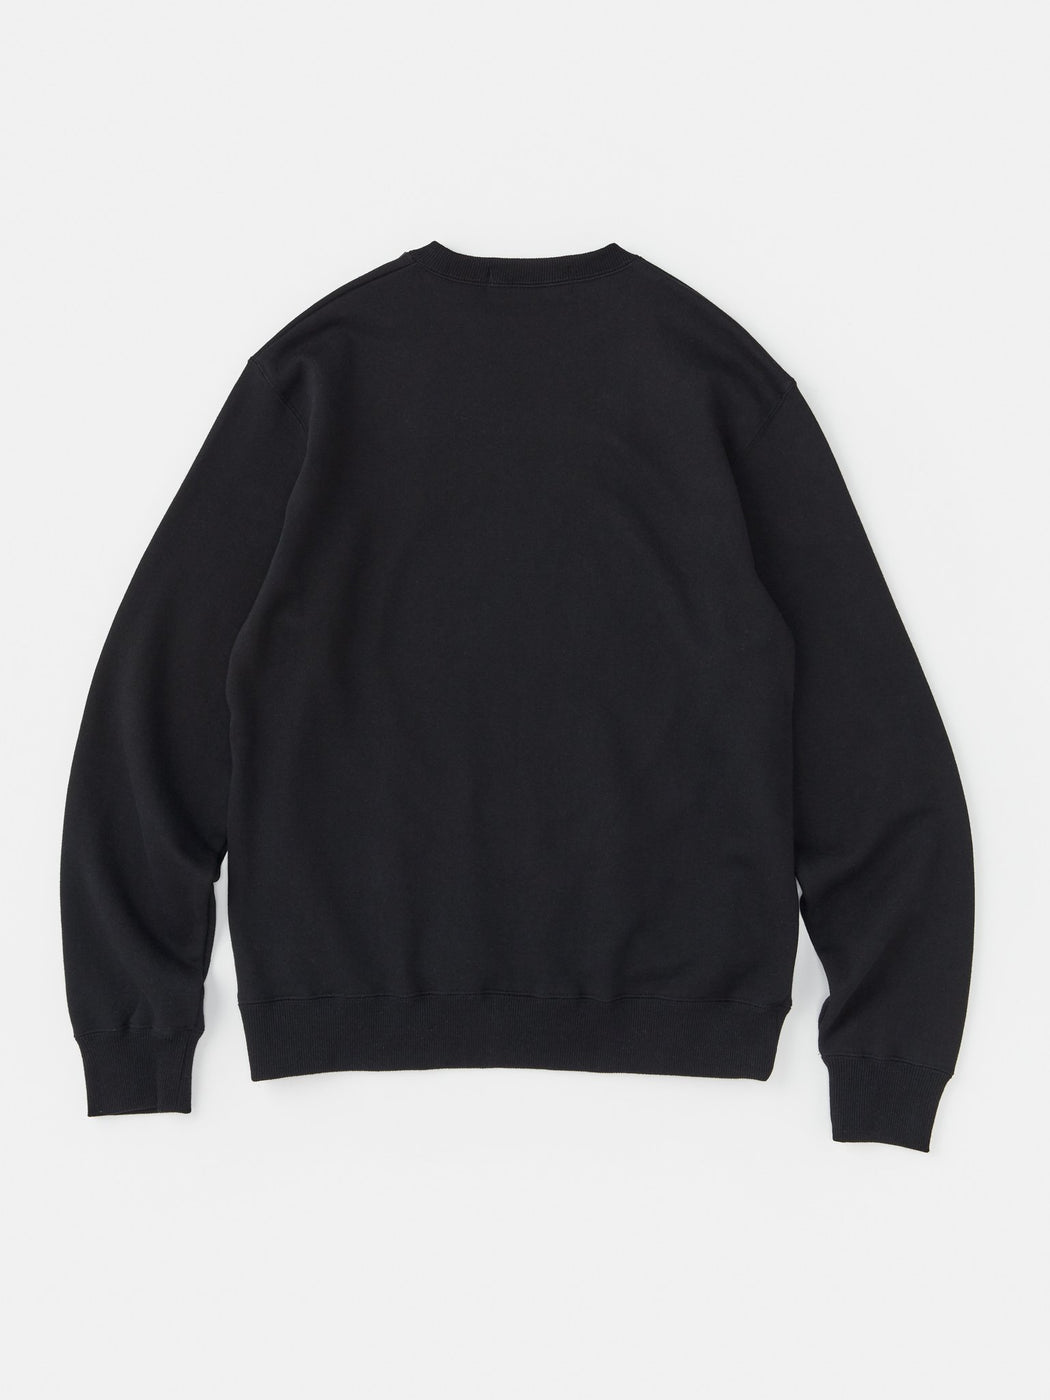 ALOYE Color Block Sweatshirt Black-Blue